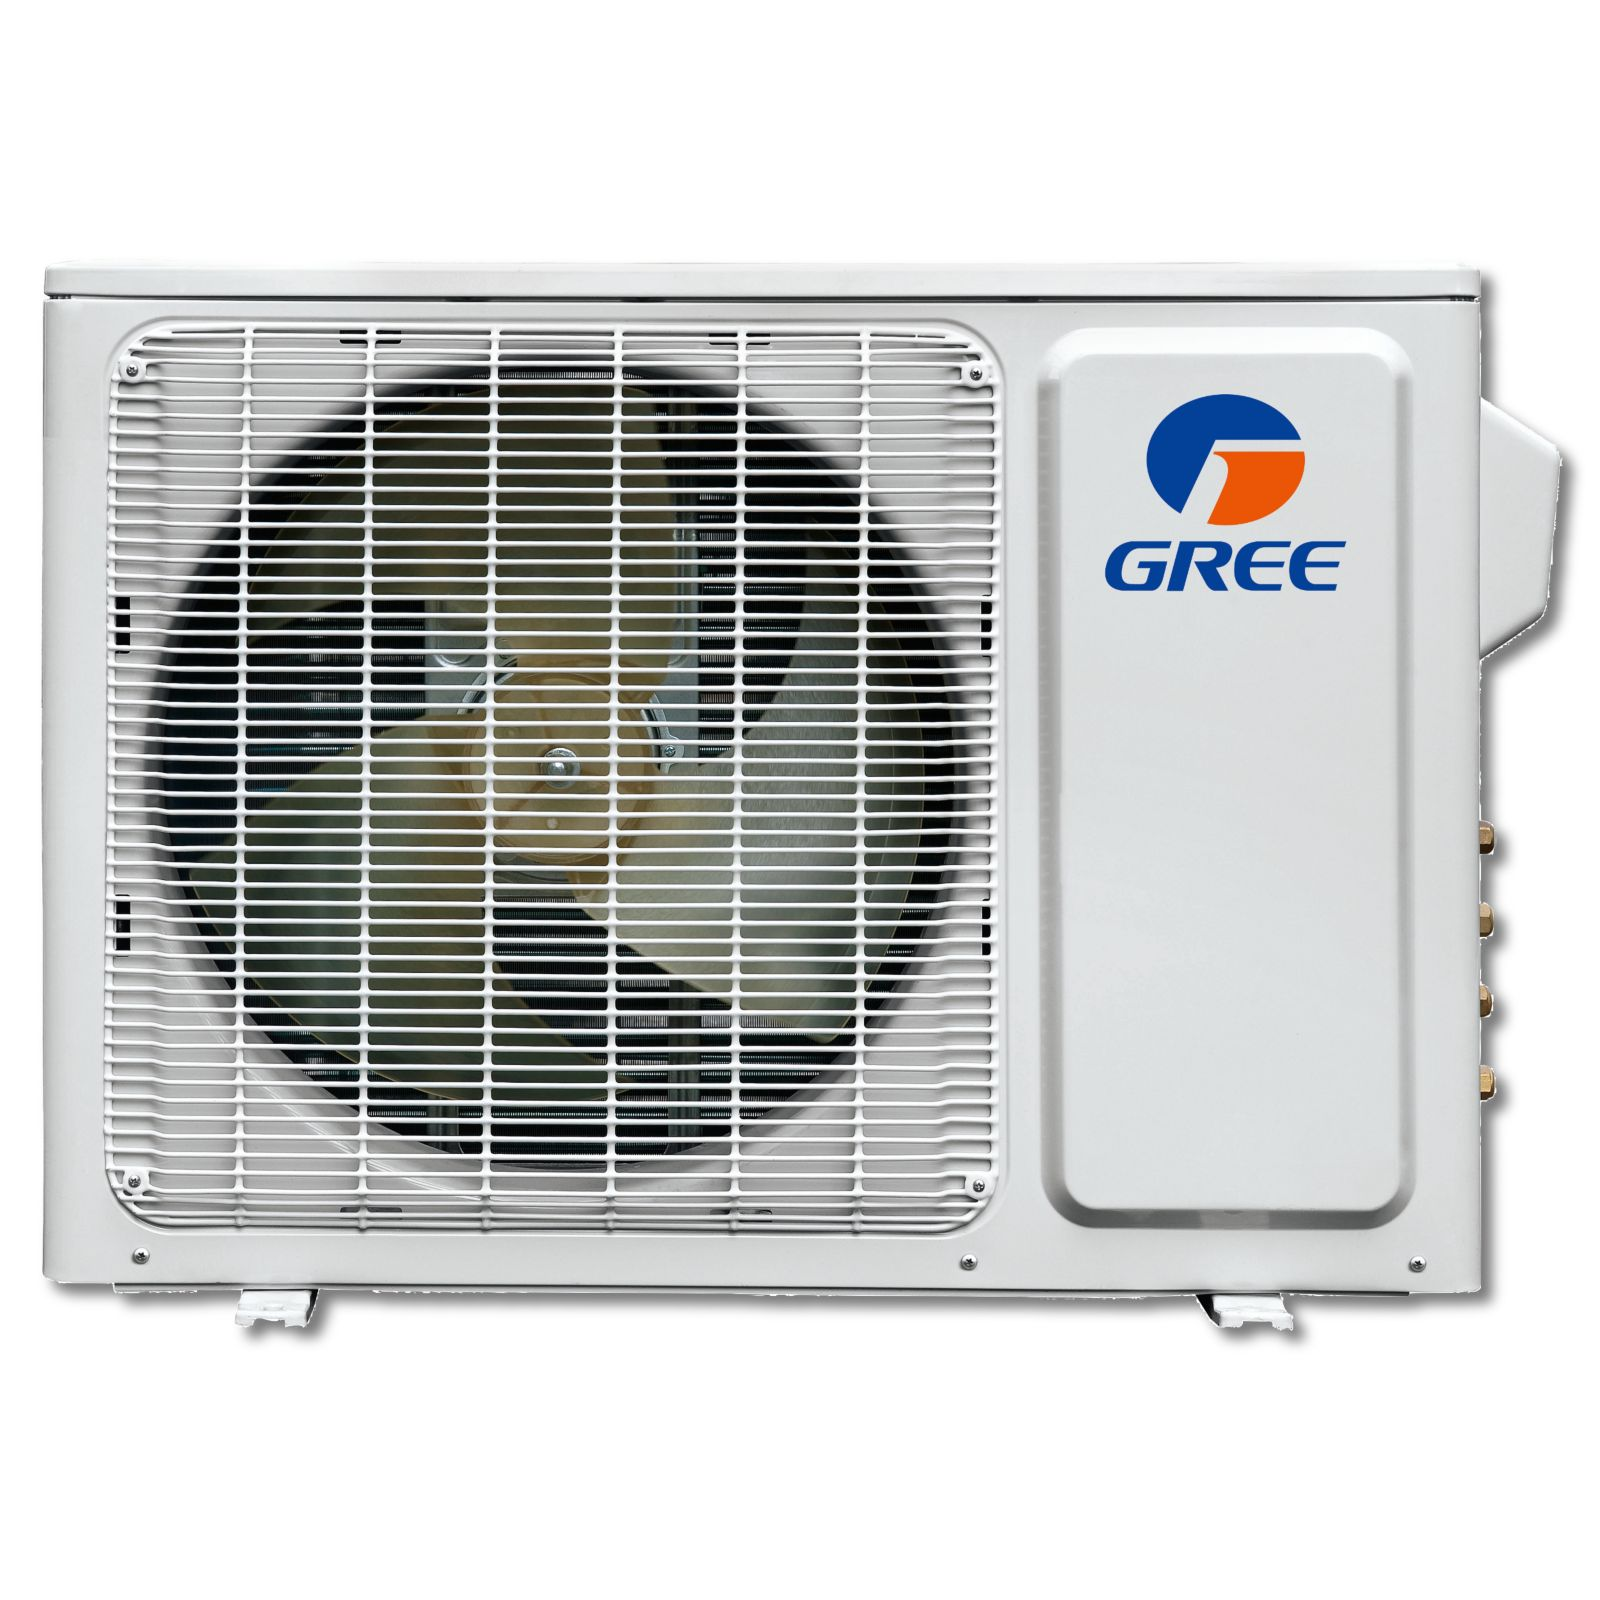 GREE MULTI18HP230V1BO - 1 1/2 Ton, 16 SEER, EVO+ Multi Ductless Mini-Split Heat Pump 208-230/1/60 High Efficiency